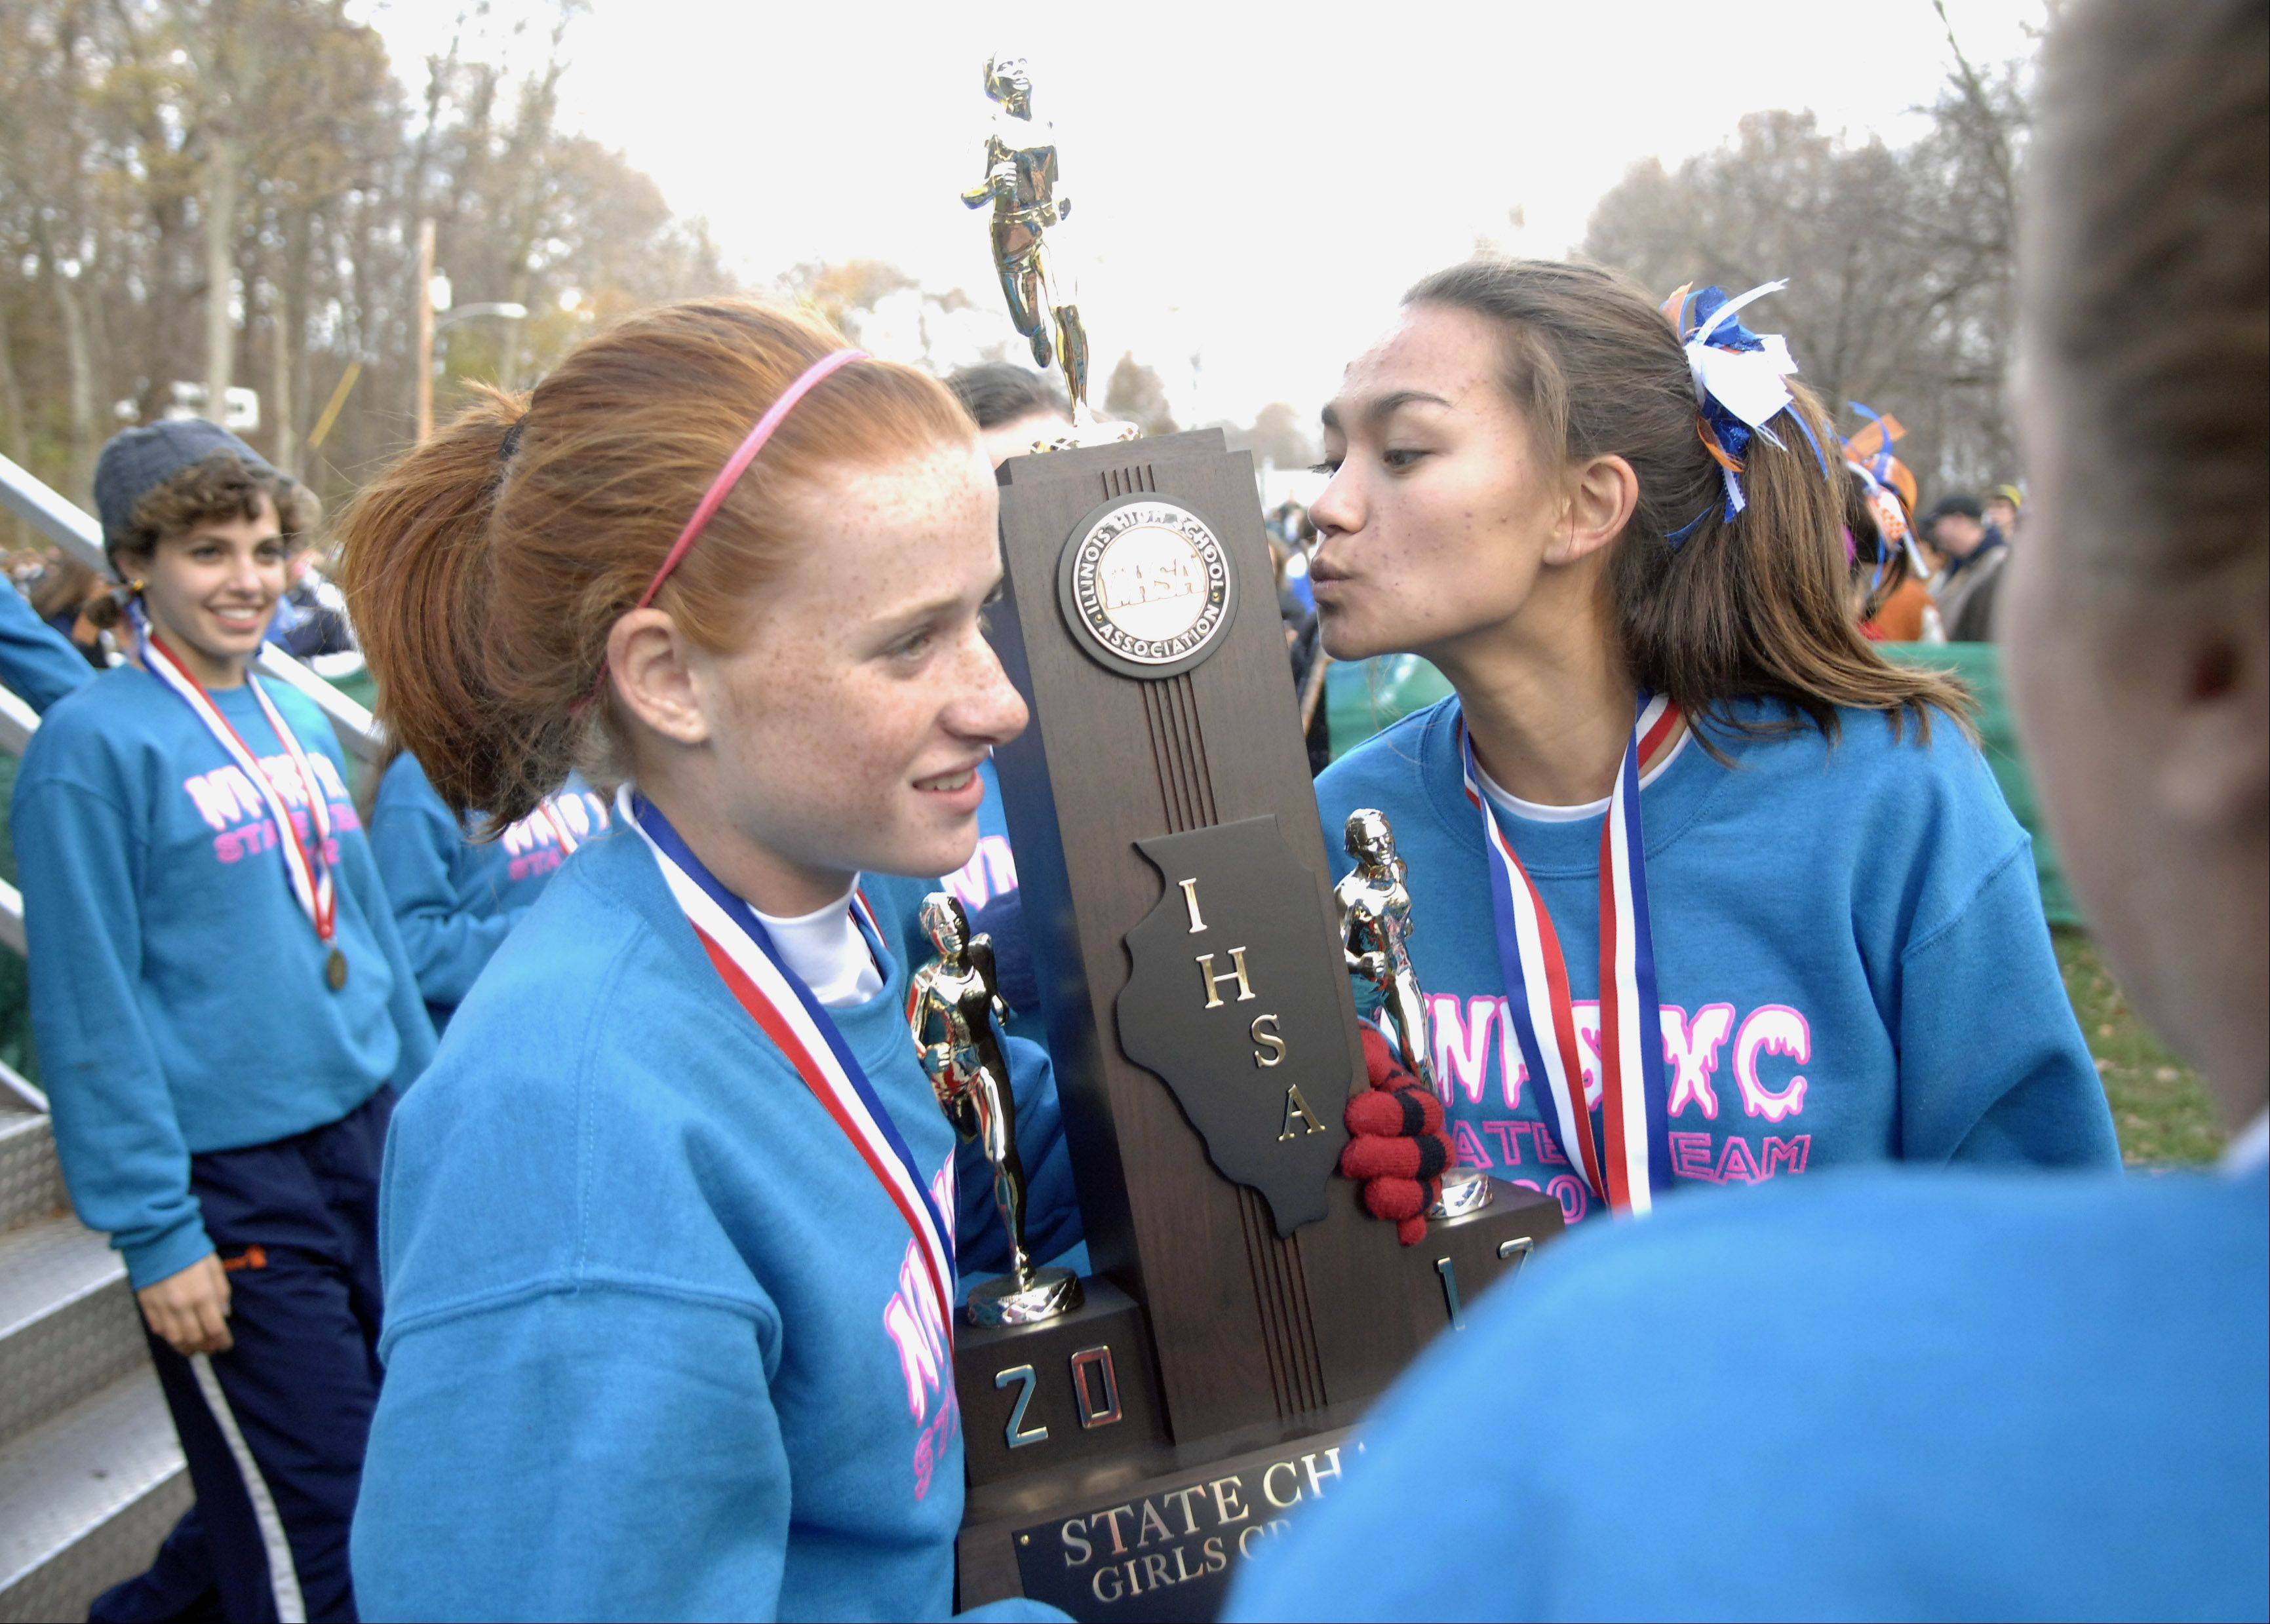 Naperville North�s Allison Ray leans in to kiss the team�s first place 3A trophy while carrying it with teammate Judy Pendergast during the awards ceremony at the cross country state finals in Peoria on Saturday, November 3.